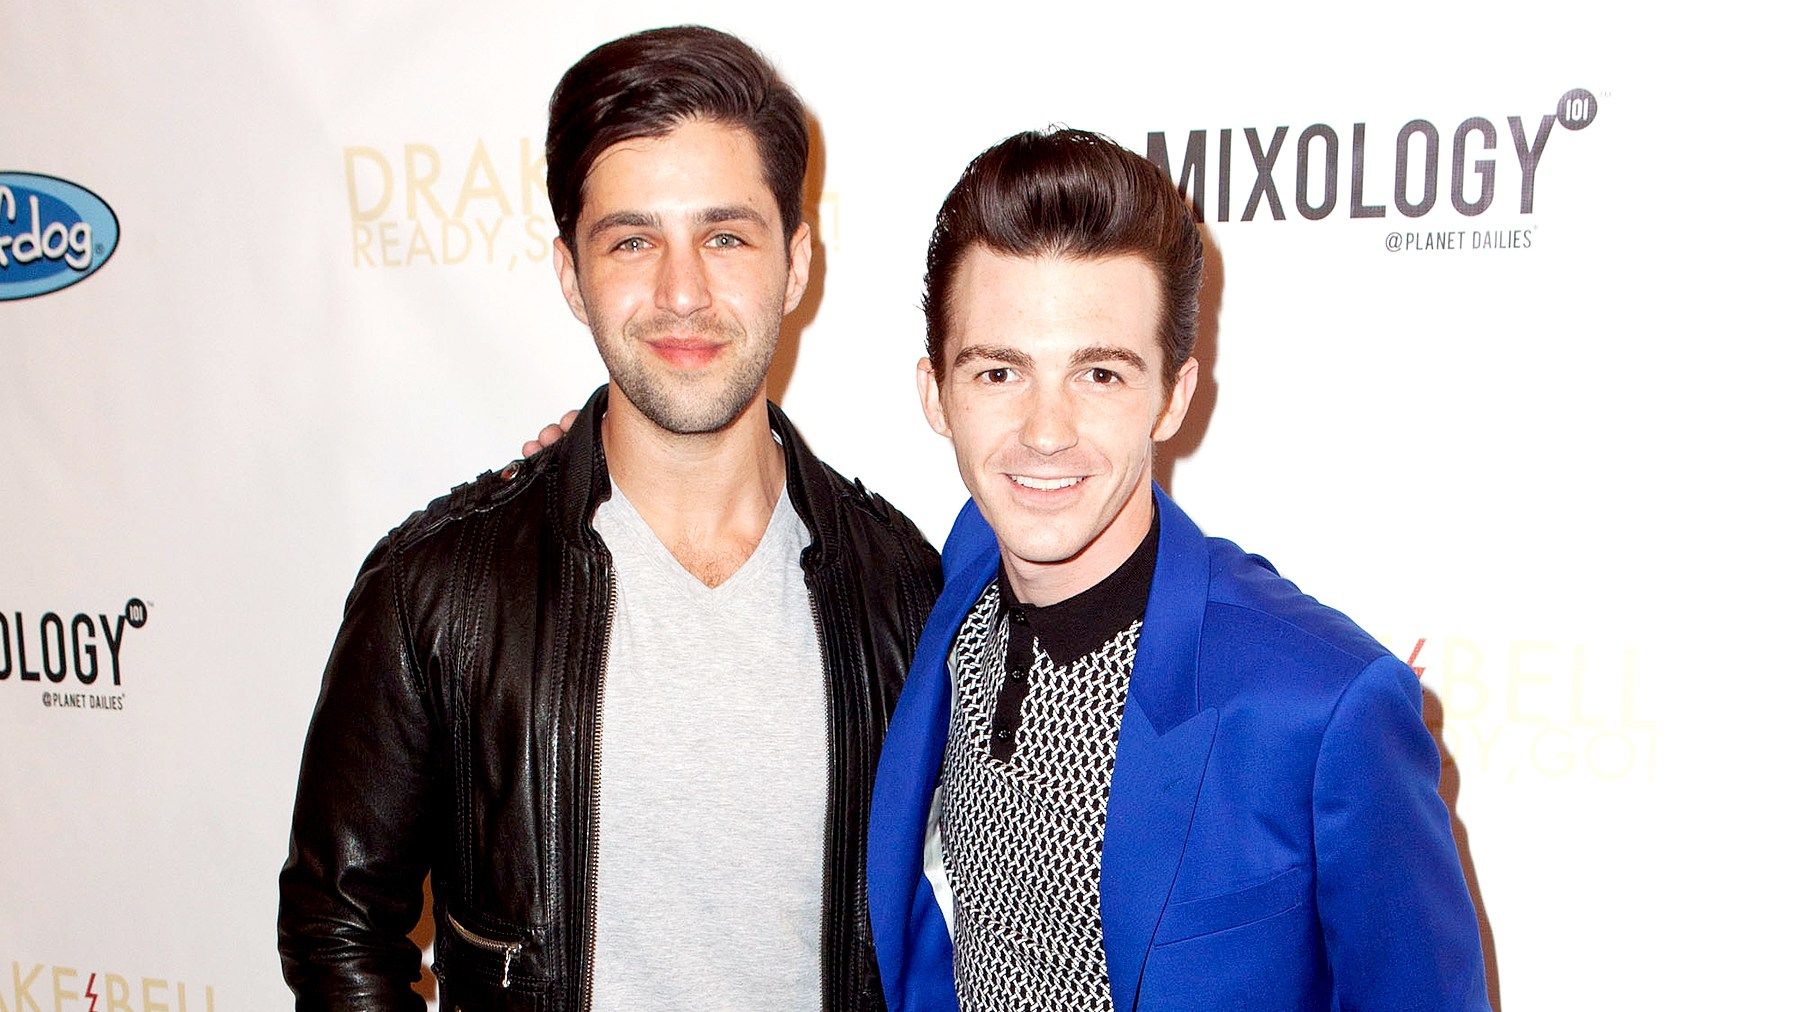 "Josh Peck and Drake Bell arrive for Drake Bell's ""Ready Steady Go!"" Album Release Party at Mixology101 & Planet Dailies on April 17, 2014 in Los Angeles, California."